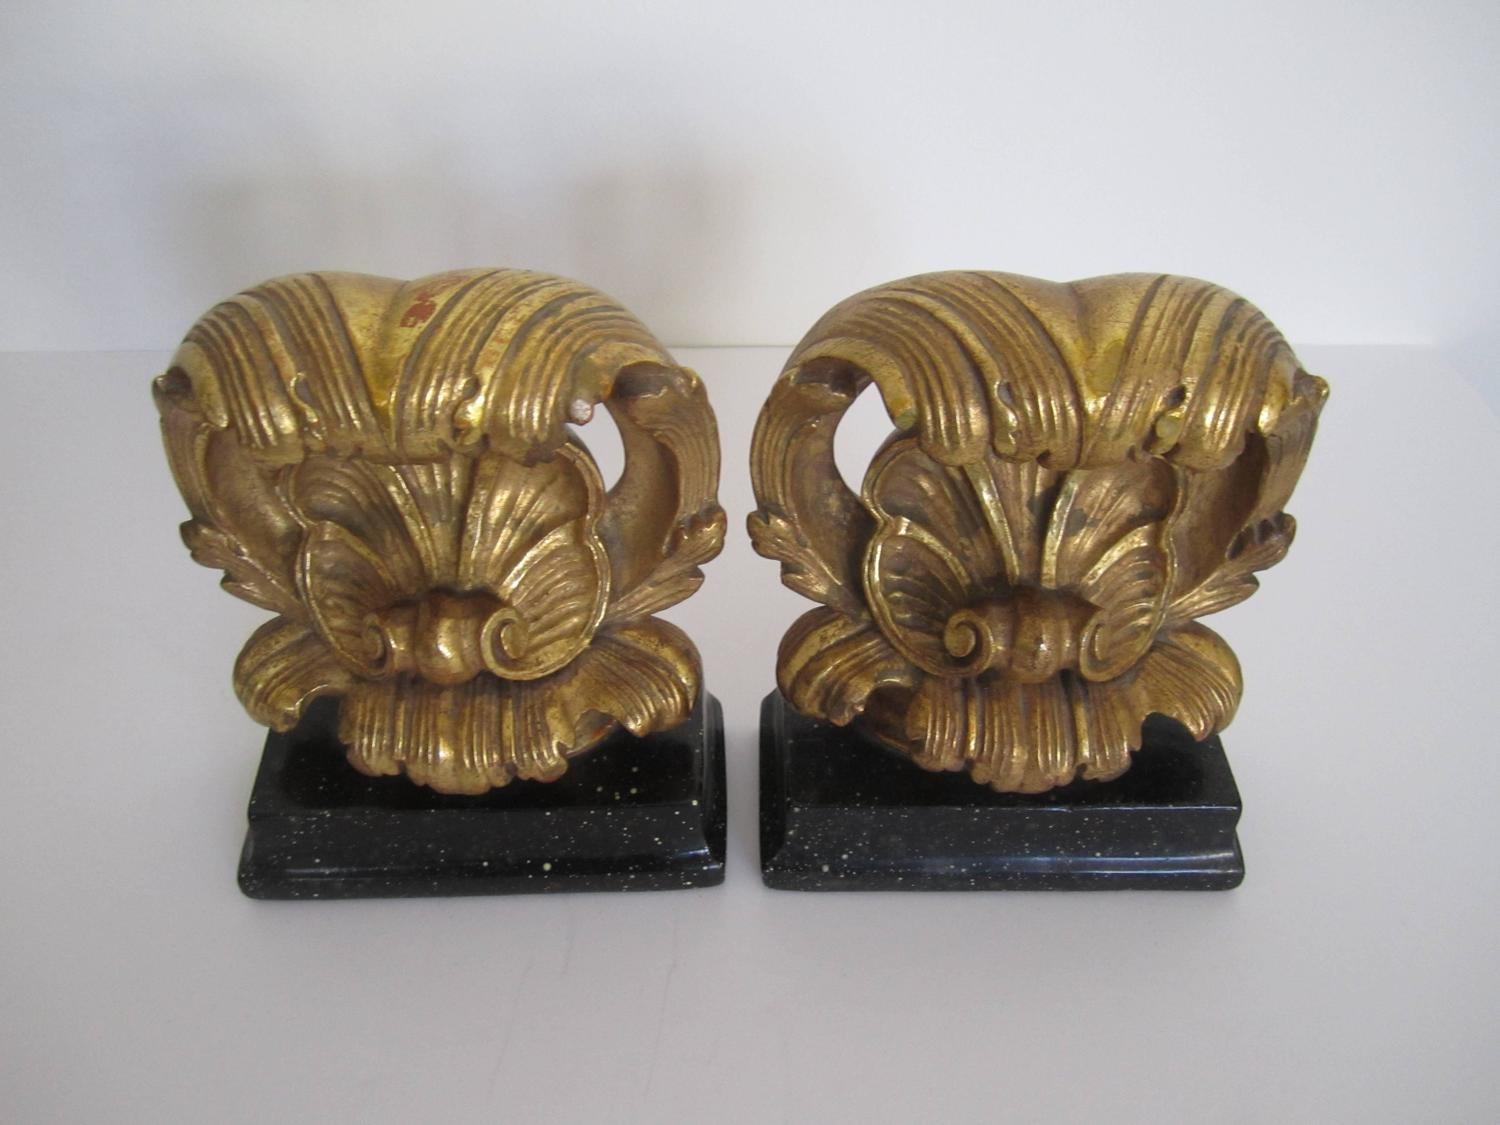 Beautiful Vintage Decorative Bookends Black Bases